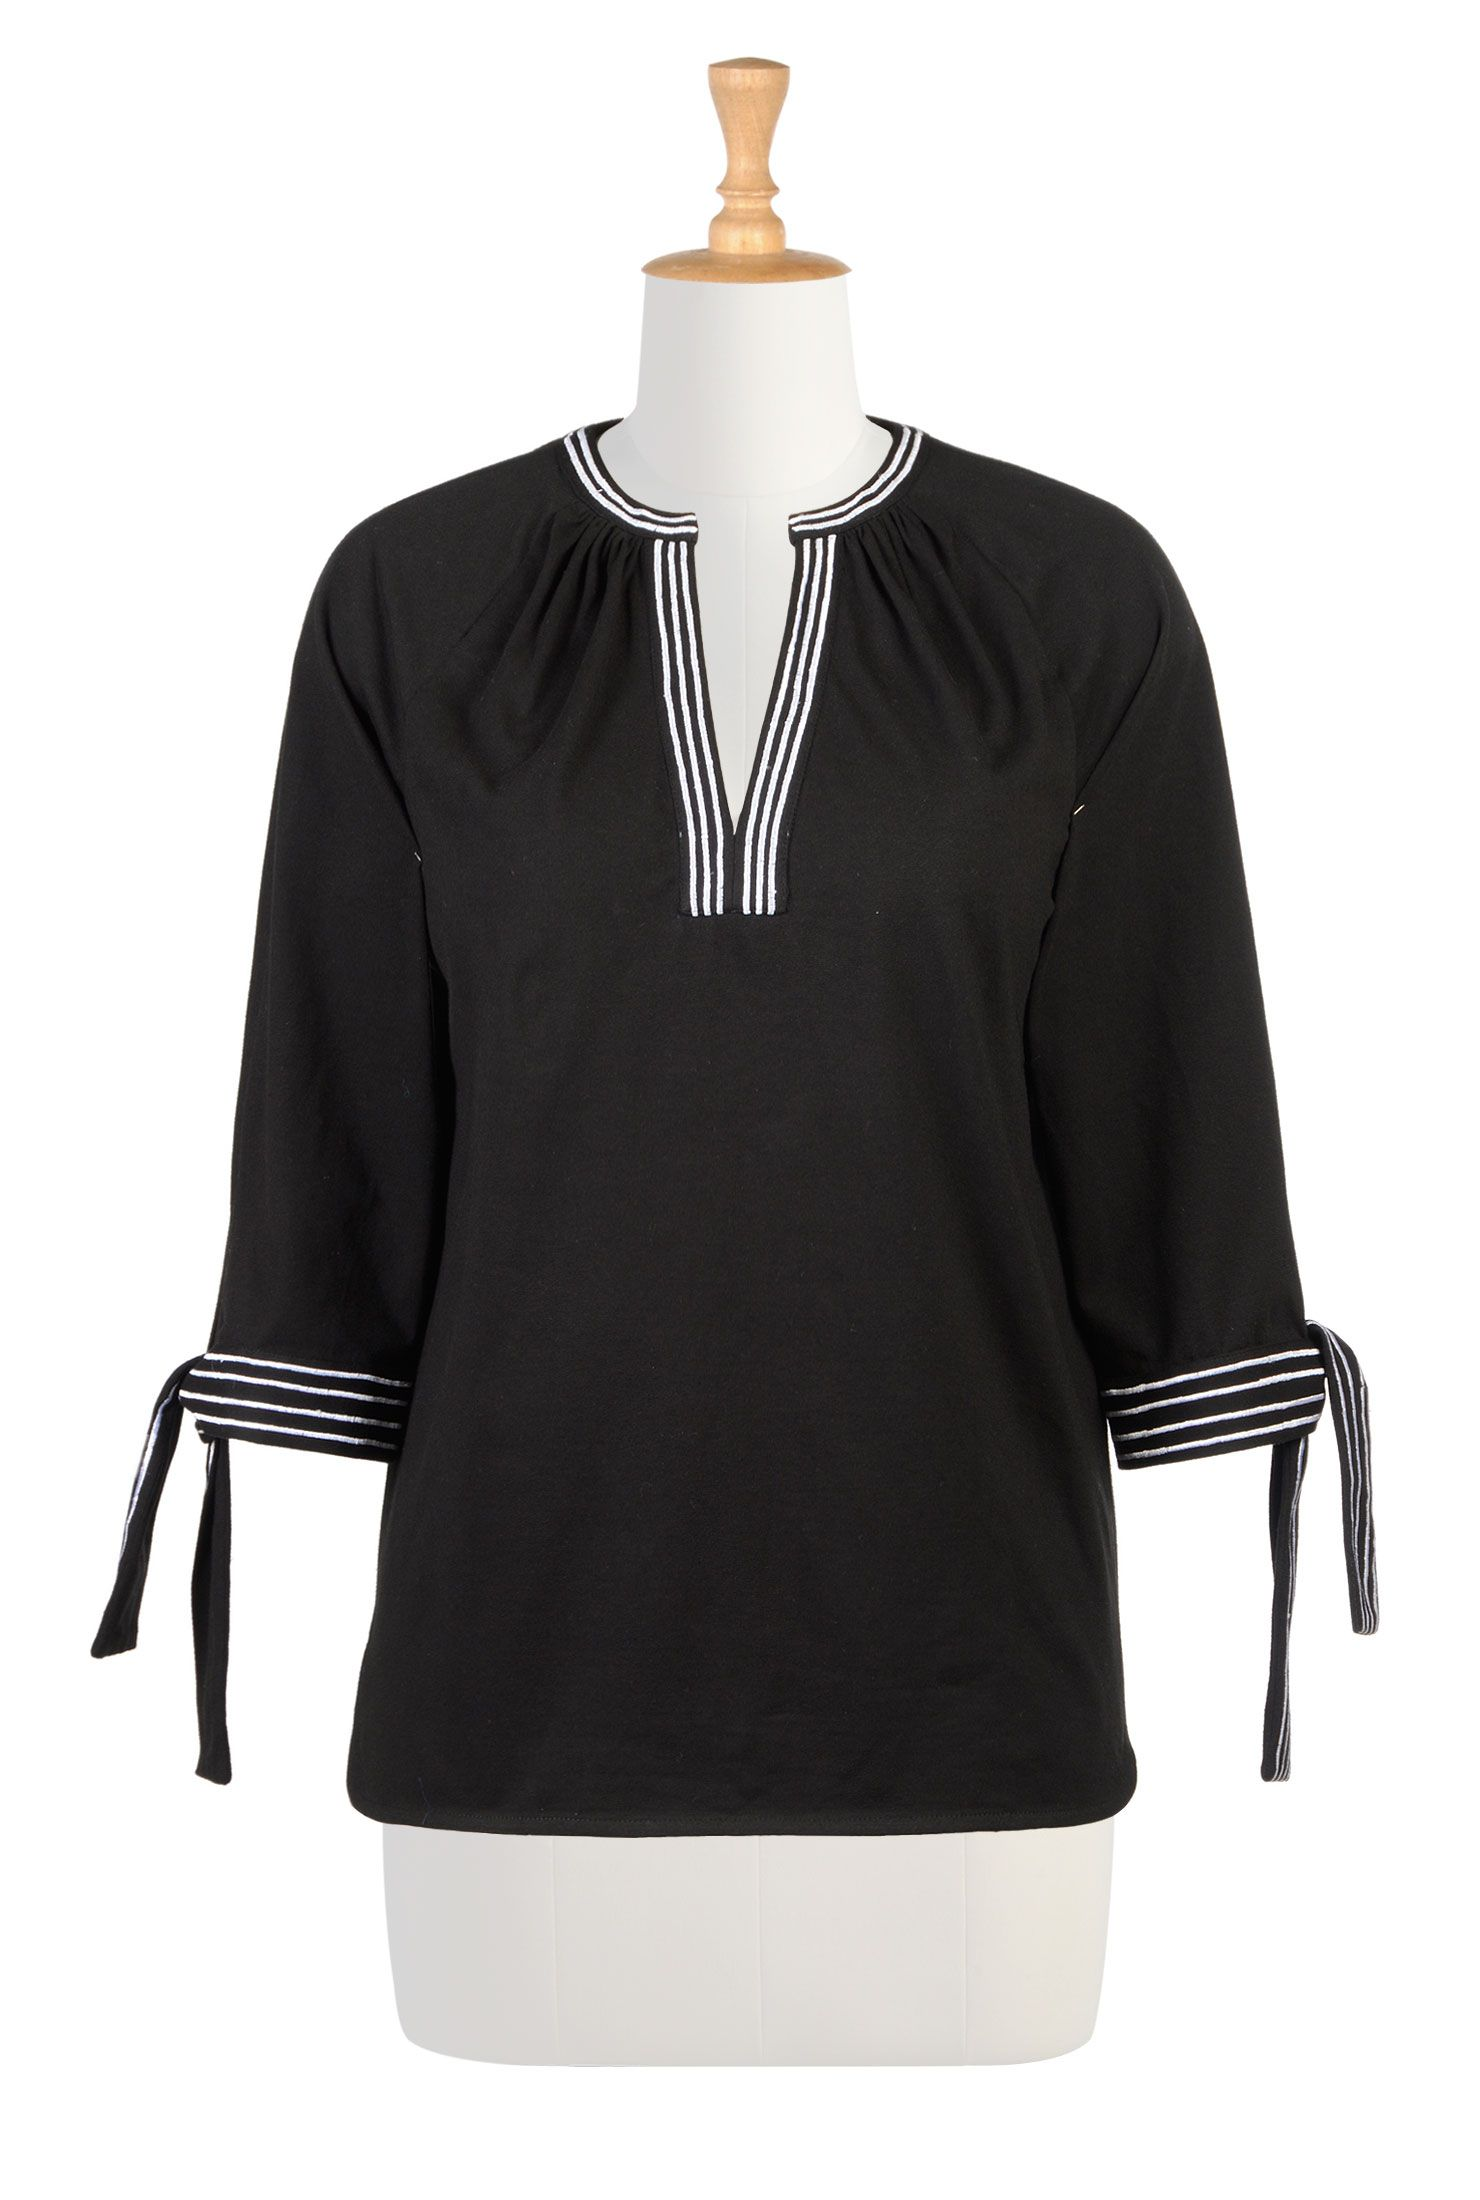 Stripe trim cotton knit tunics jersey knit tops womens long sleeve